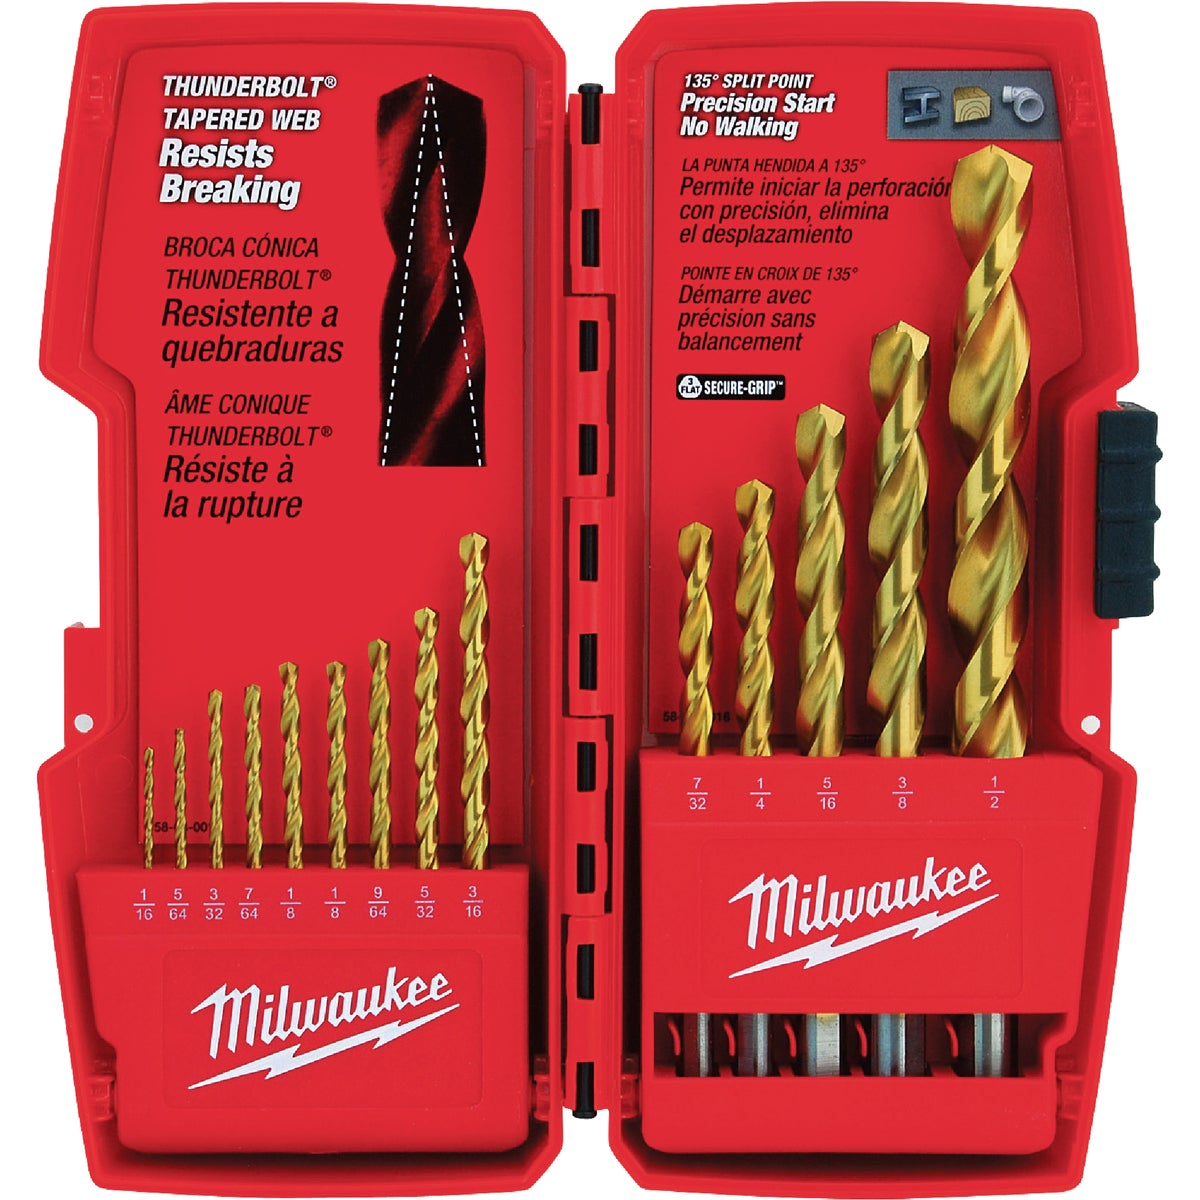 14PC TITANIUM BIT SET - 48-89-0011 by Milwaukee Accessory